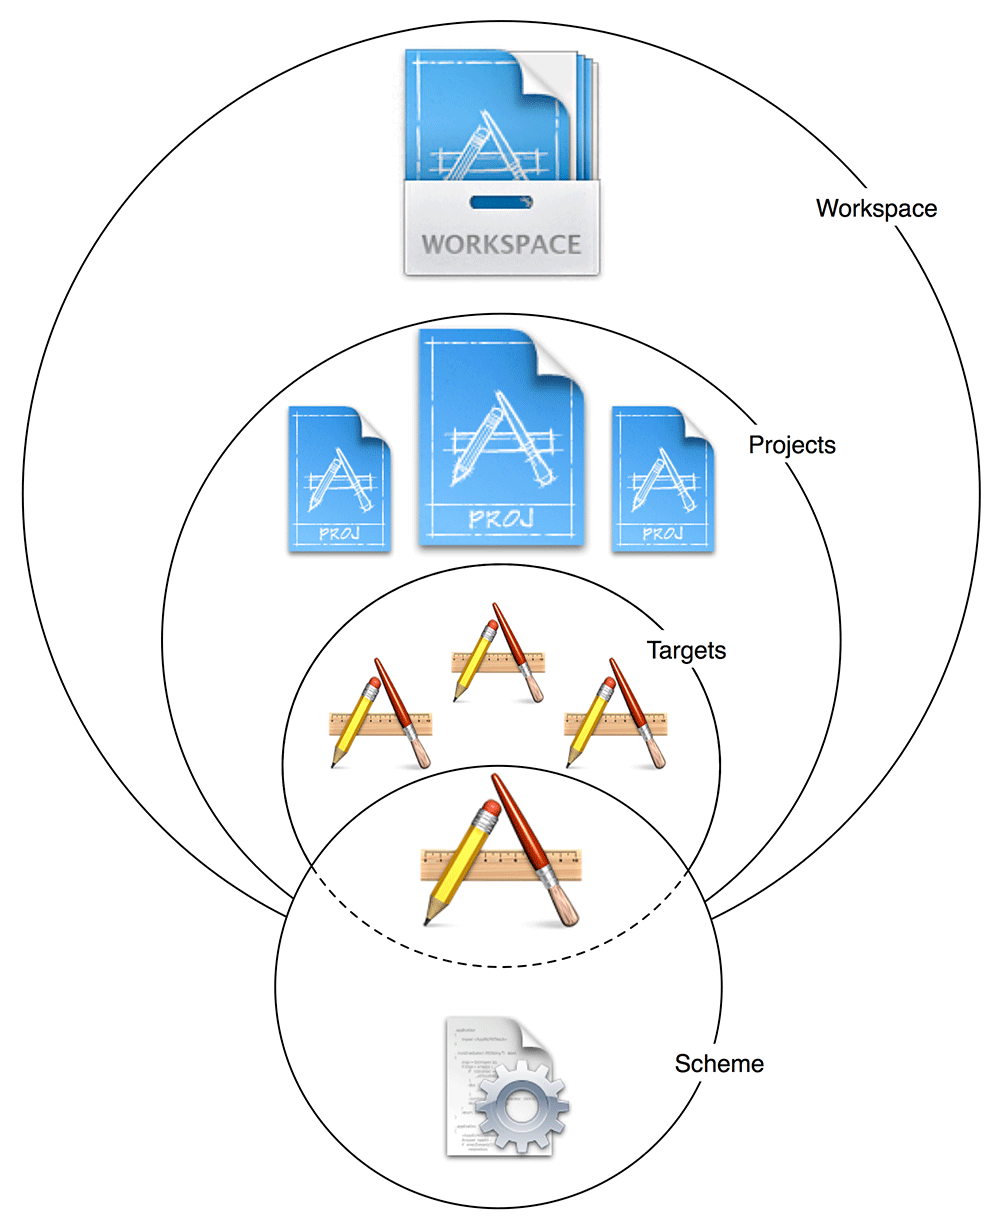 Xcode containers